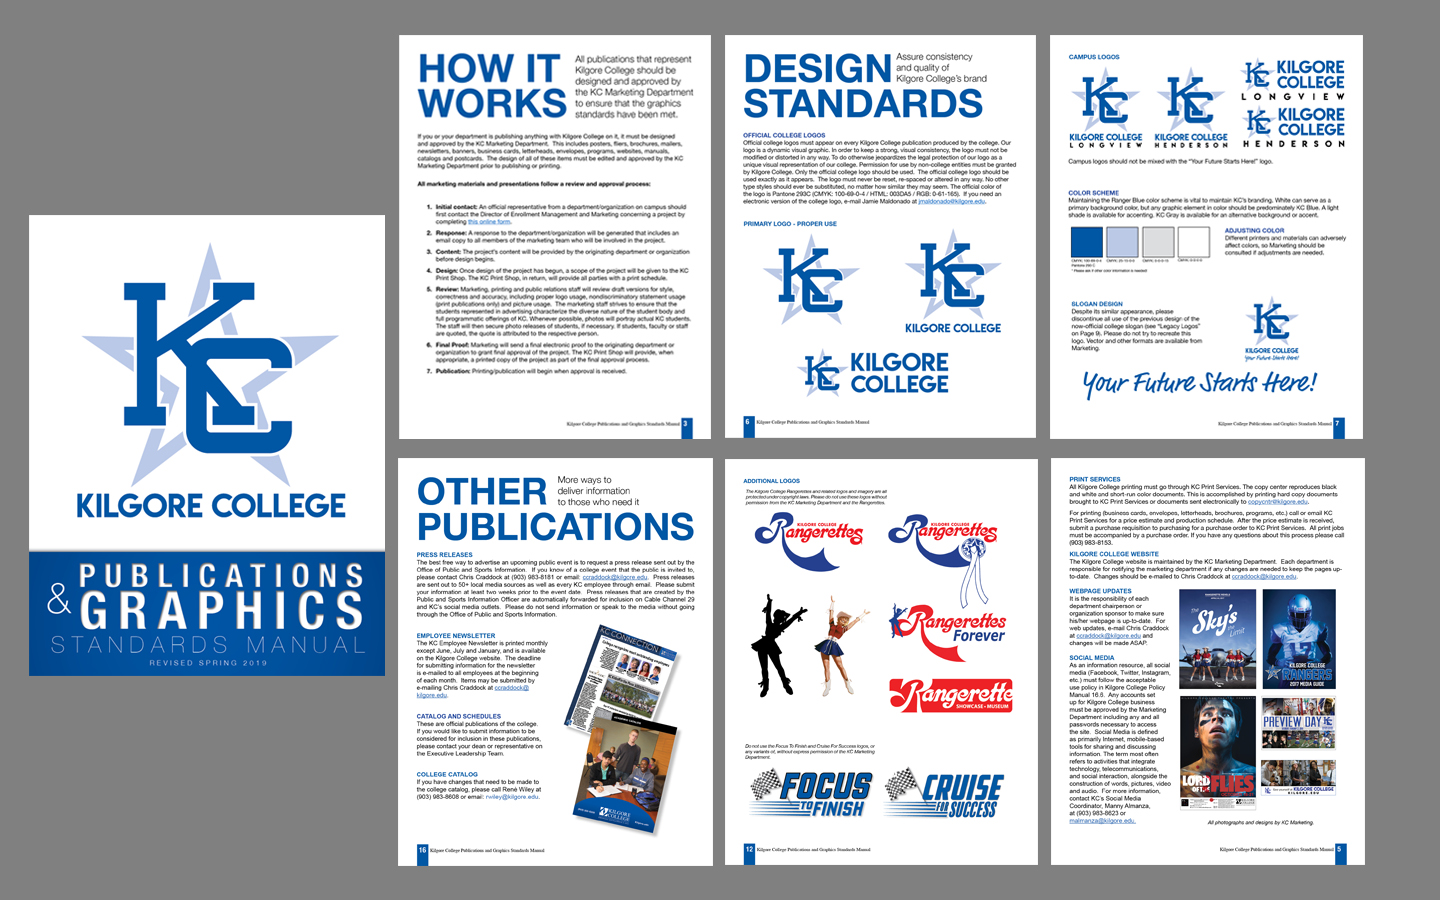 KC Publications+Standards excerpts